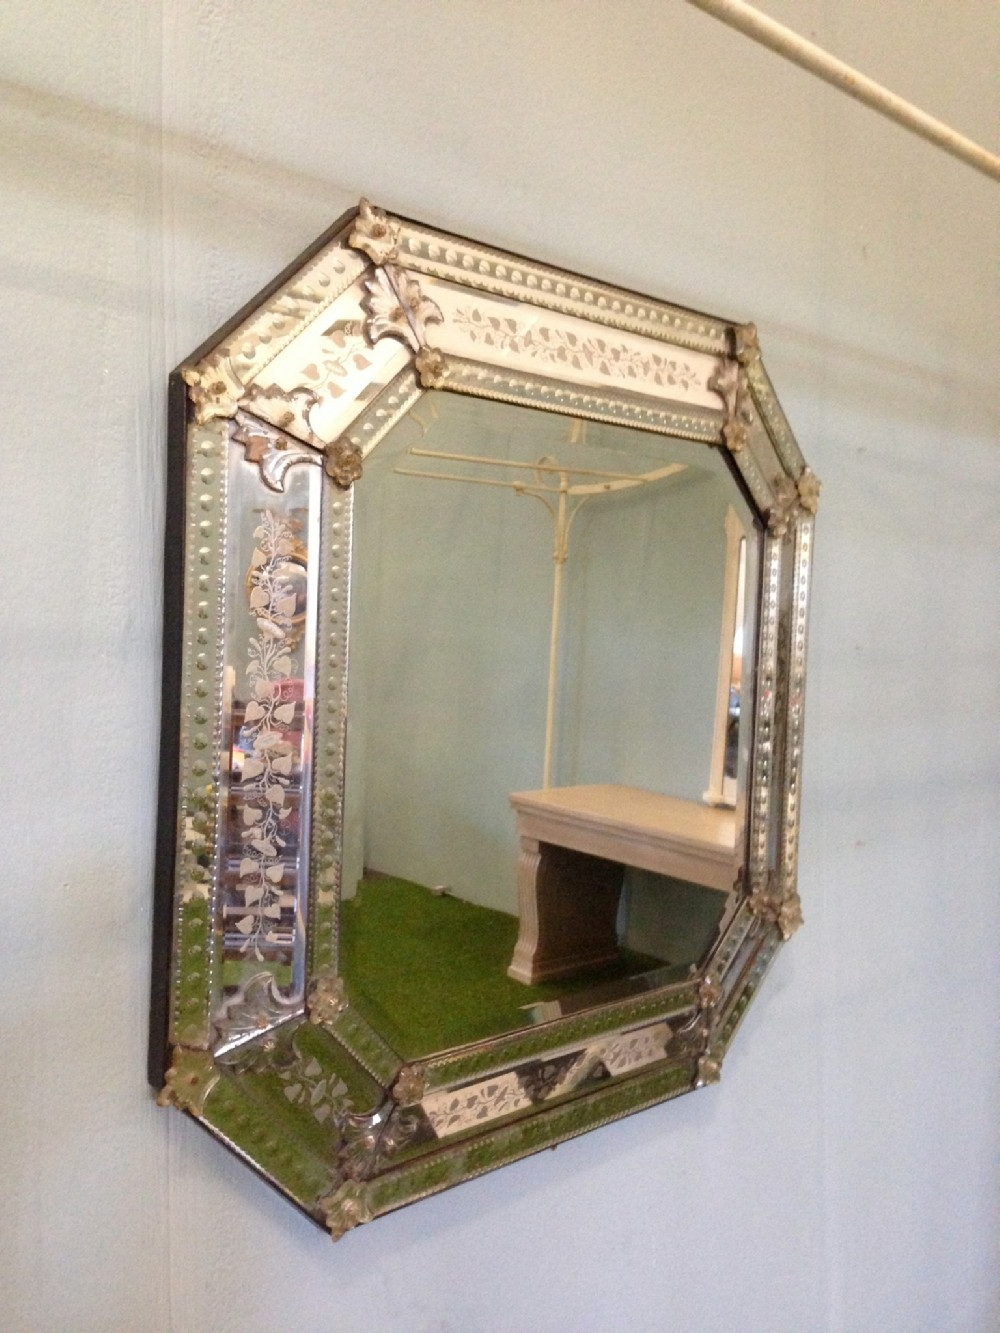 Decorative Etched Wall Mirrors Intended For Famous Large Octagonal Venetian Wall Mirror With Decorative Detailed (View 1 of 20)